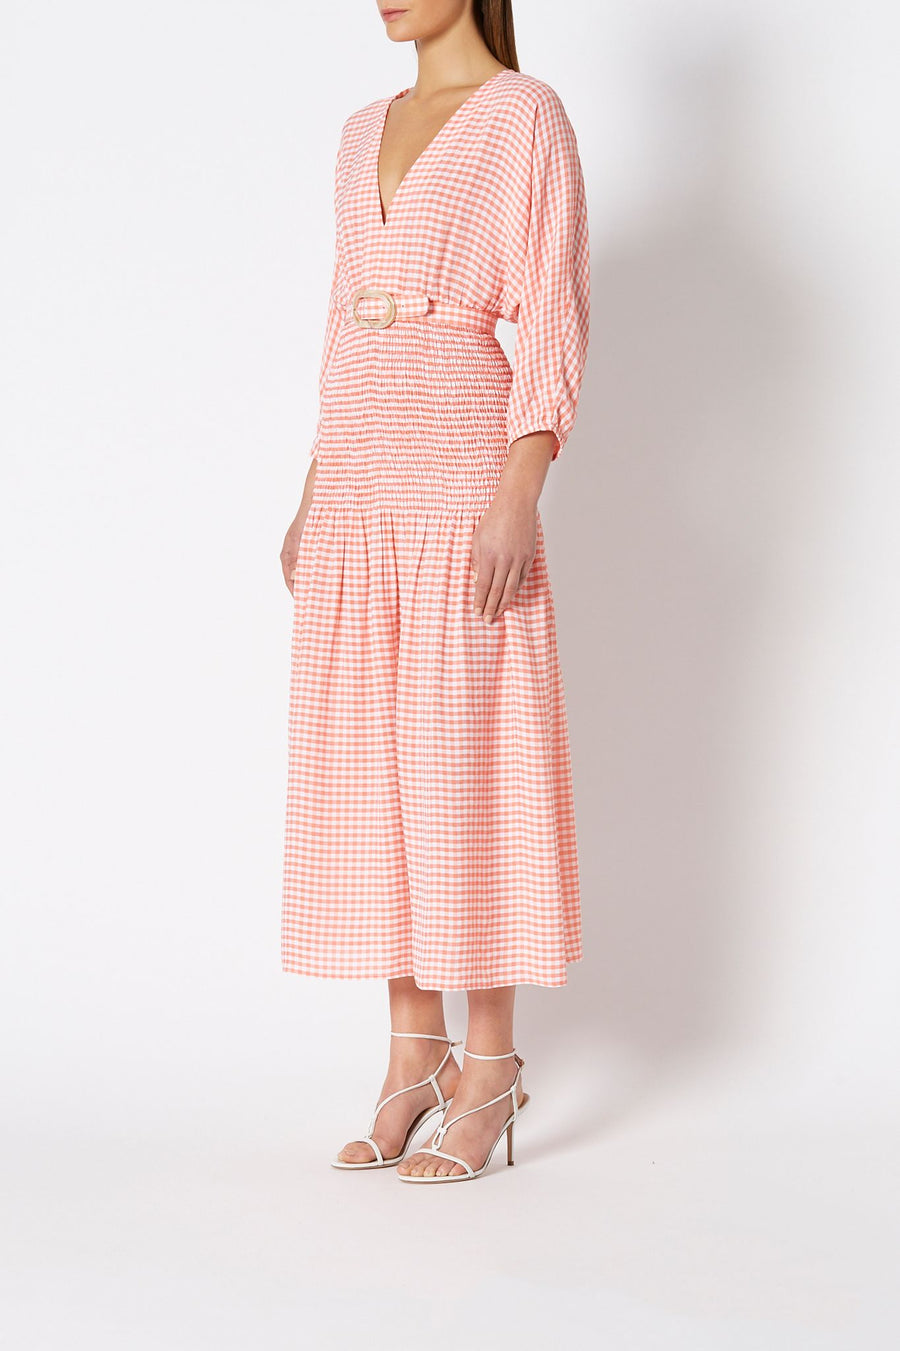 GINGHAM SHIRRED DRESS, 3 QUARTER SLEEVES, V NECK, TIGHT AROUND WAIST, FALLS ABOVE ANKLE, COLOR WATERMELON